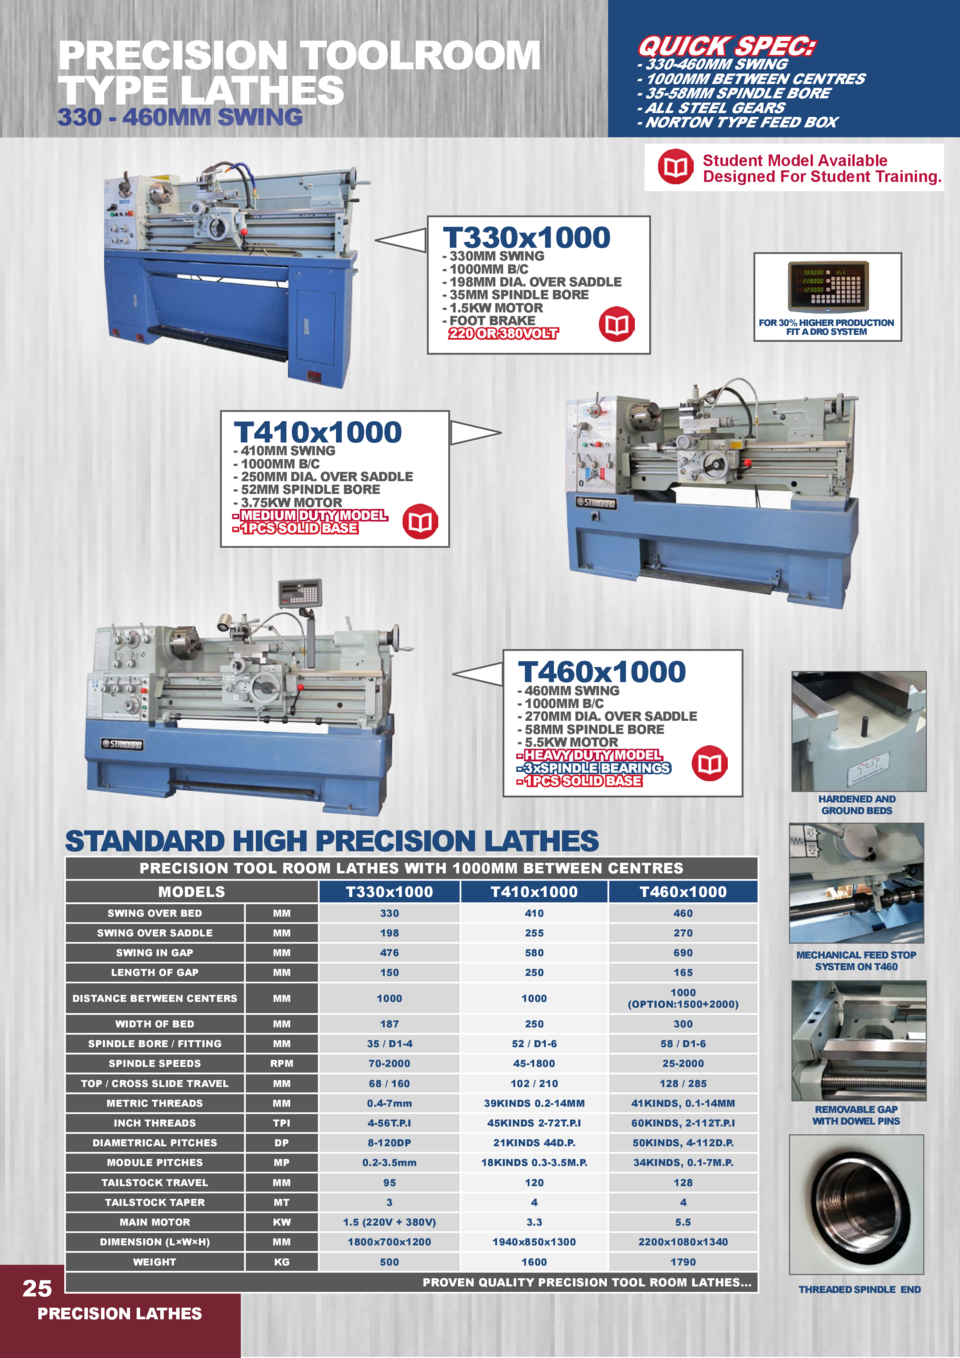 PRECISION TOOLROOM TYPE LATHES 330 - 460MM SWING  QUICK SPEC   - 330-460MM SWING - 1000MM BETWEEN CENTRES - 35-58MM SPINDL...